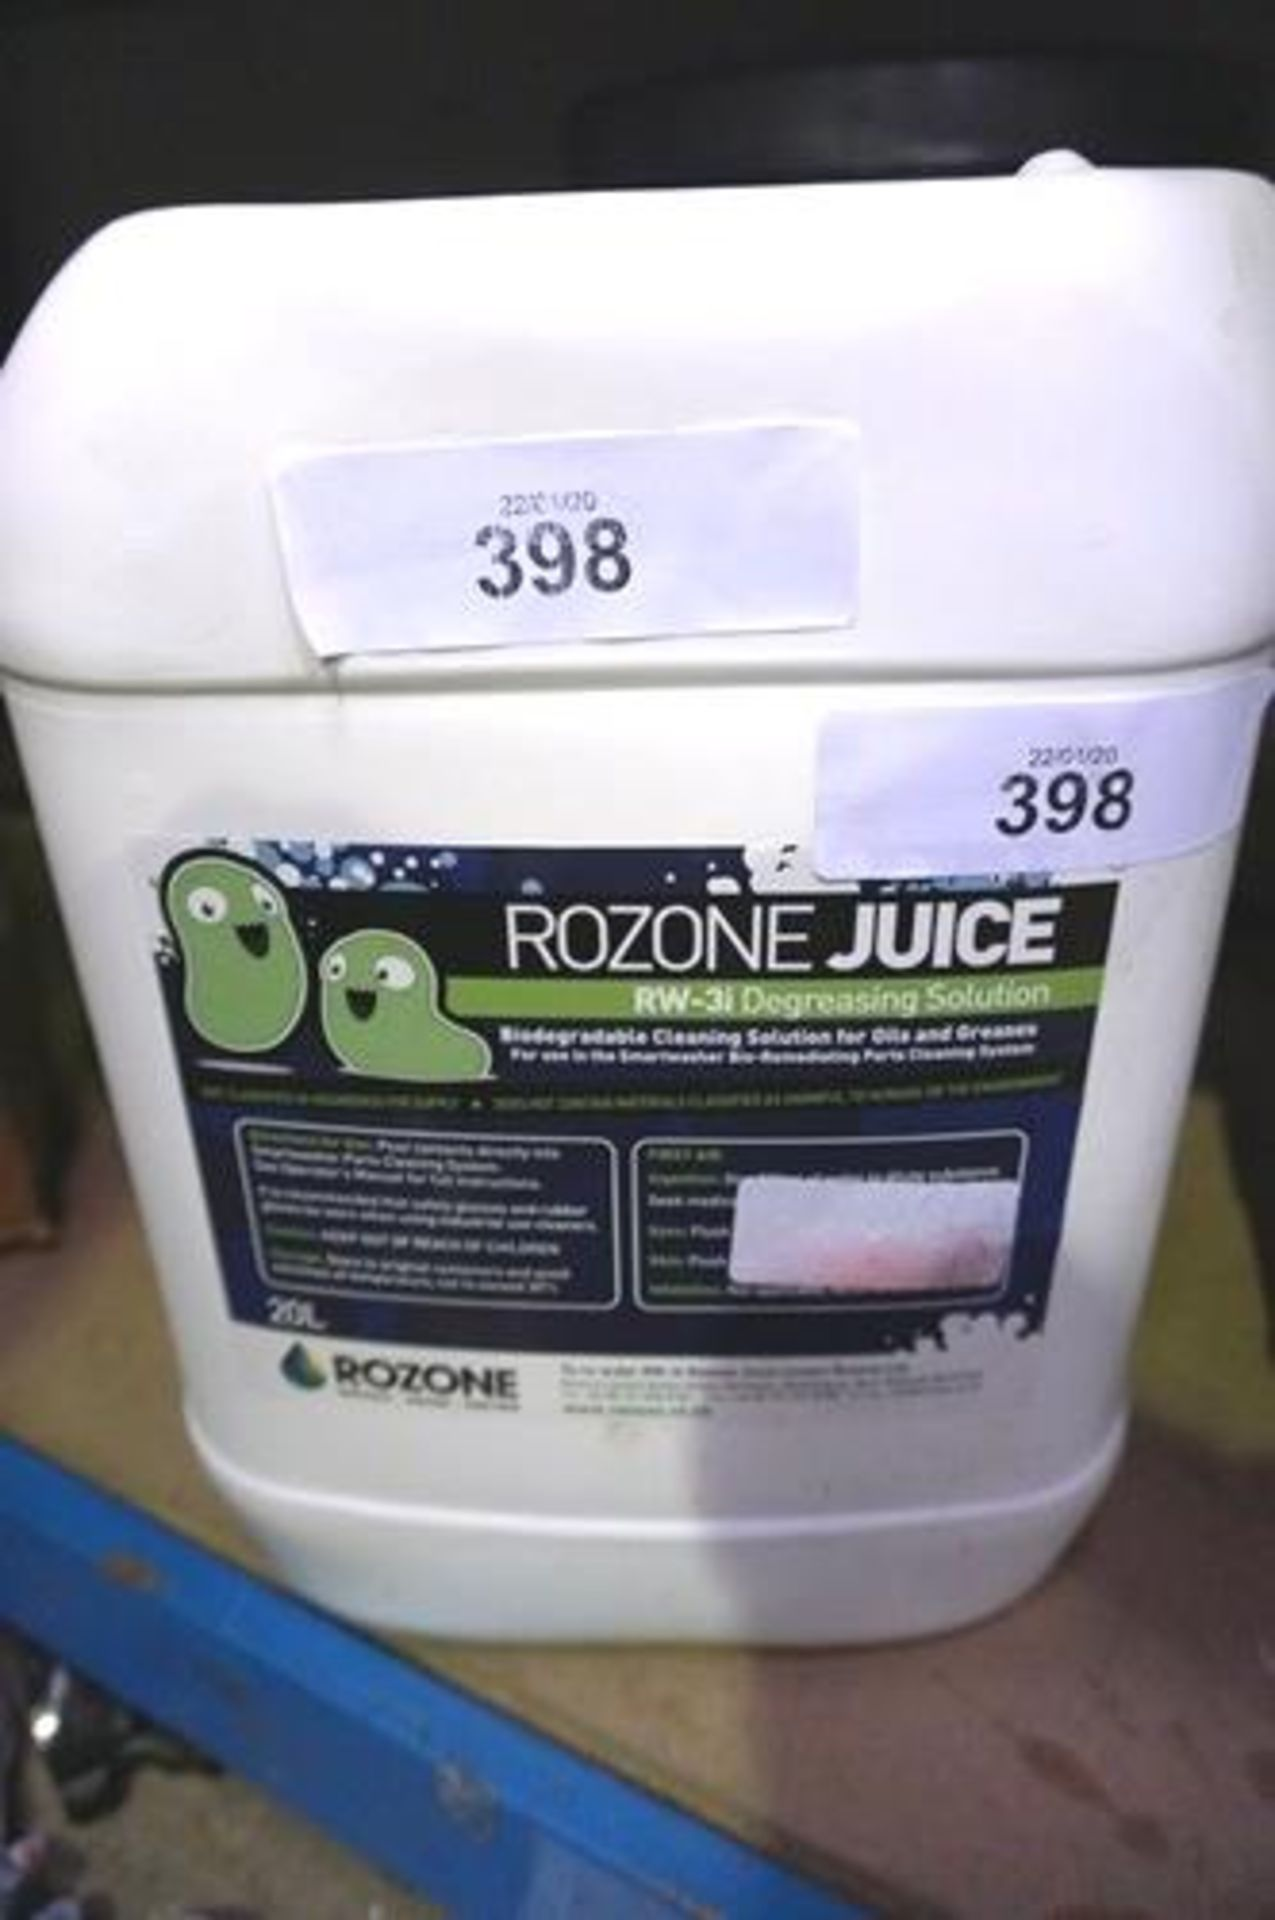 Lot 398 - 1 x 20ltr bottle of Rozone Juice Rw3i degreasing solution, bio-degradable - Sealed new (GS11)